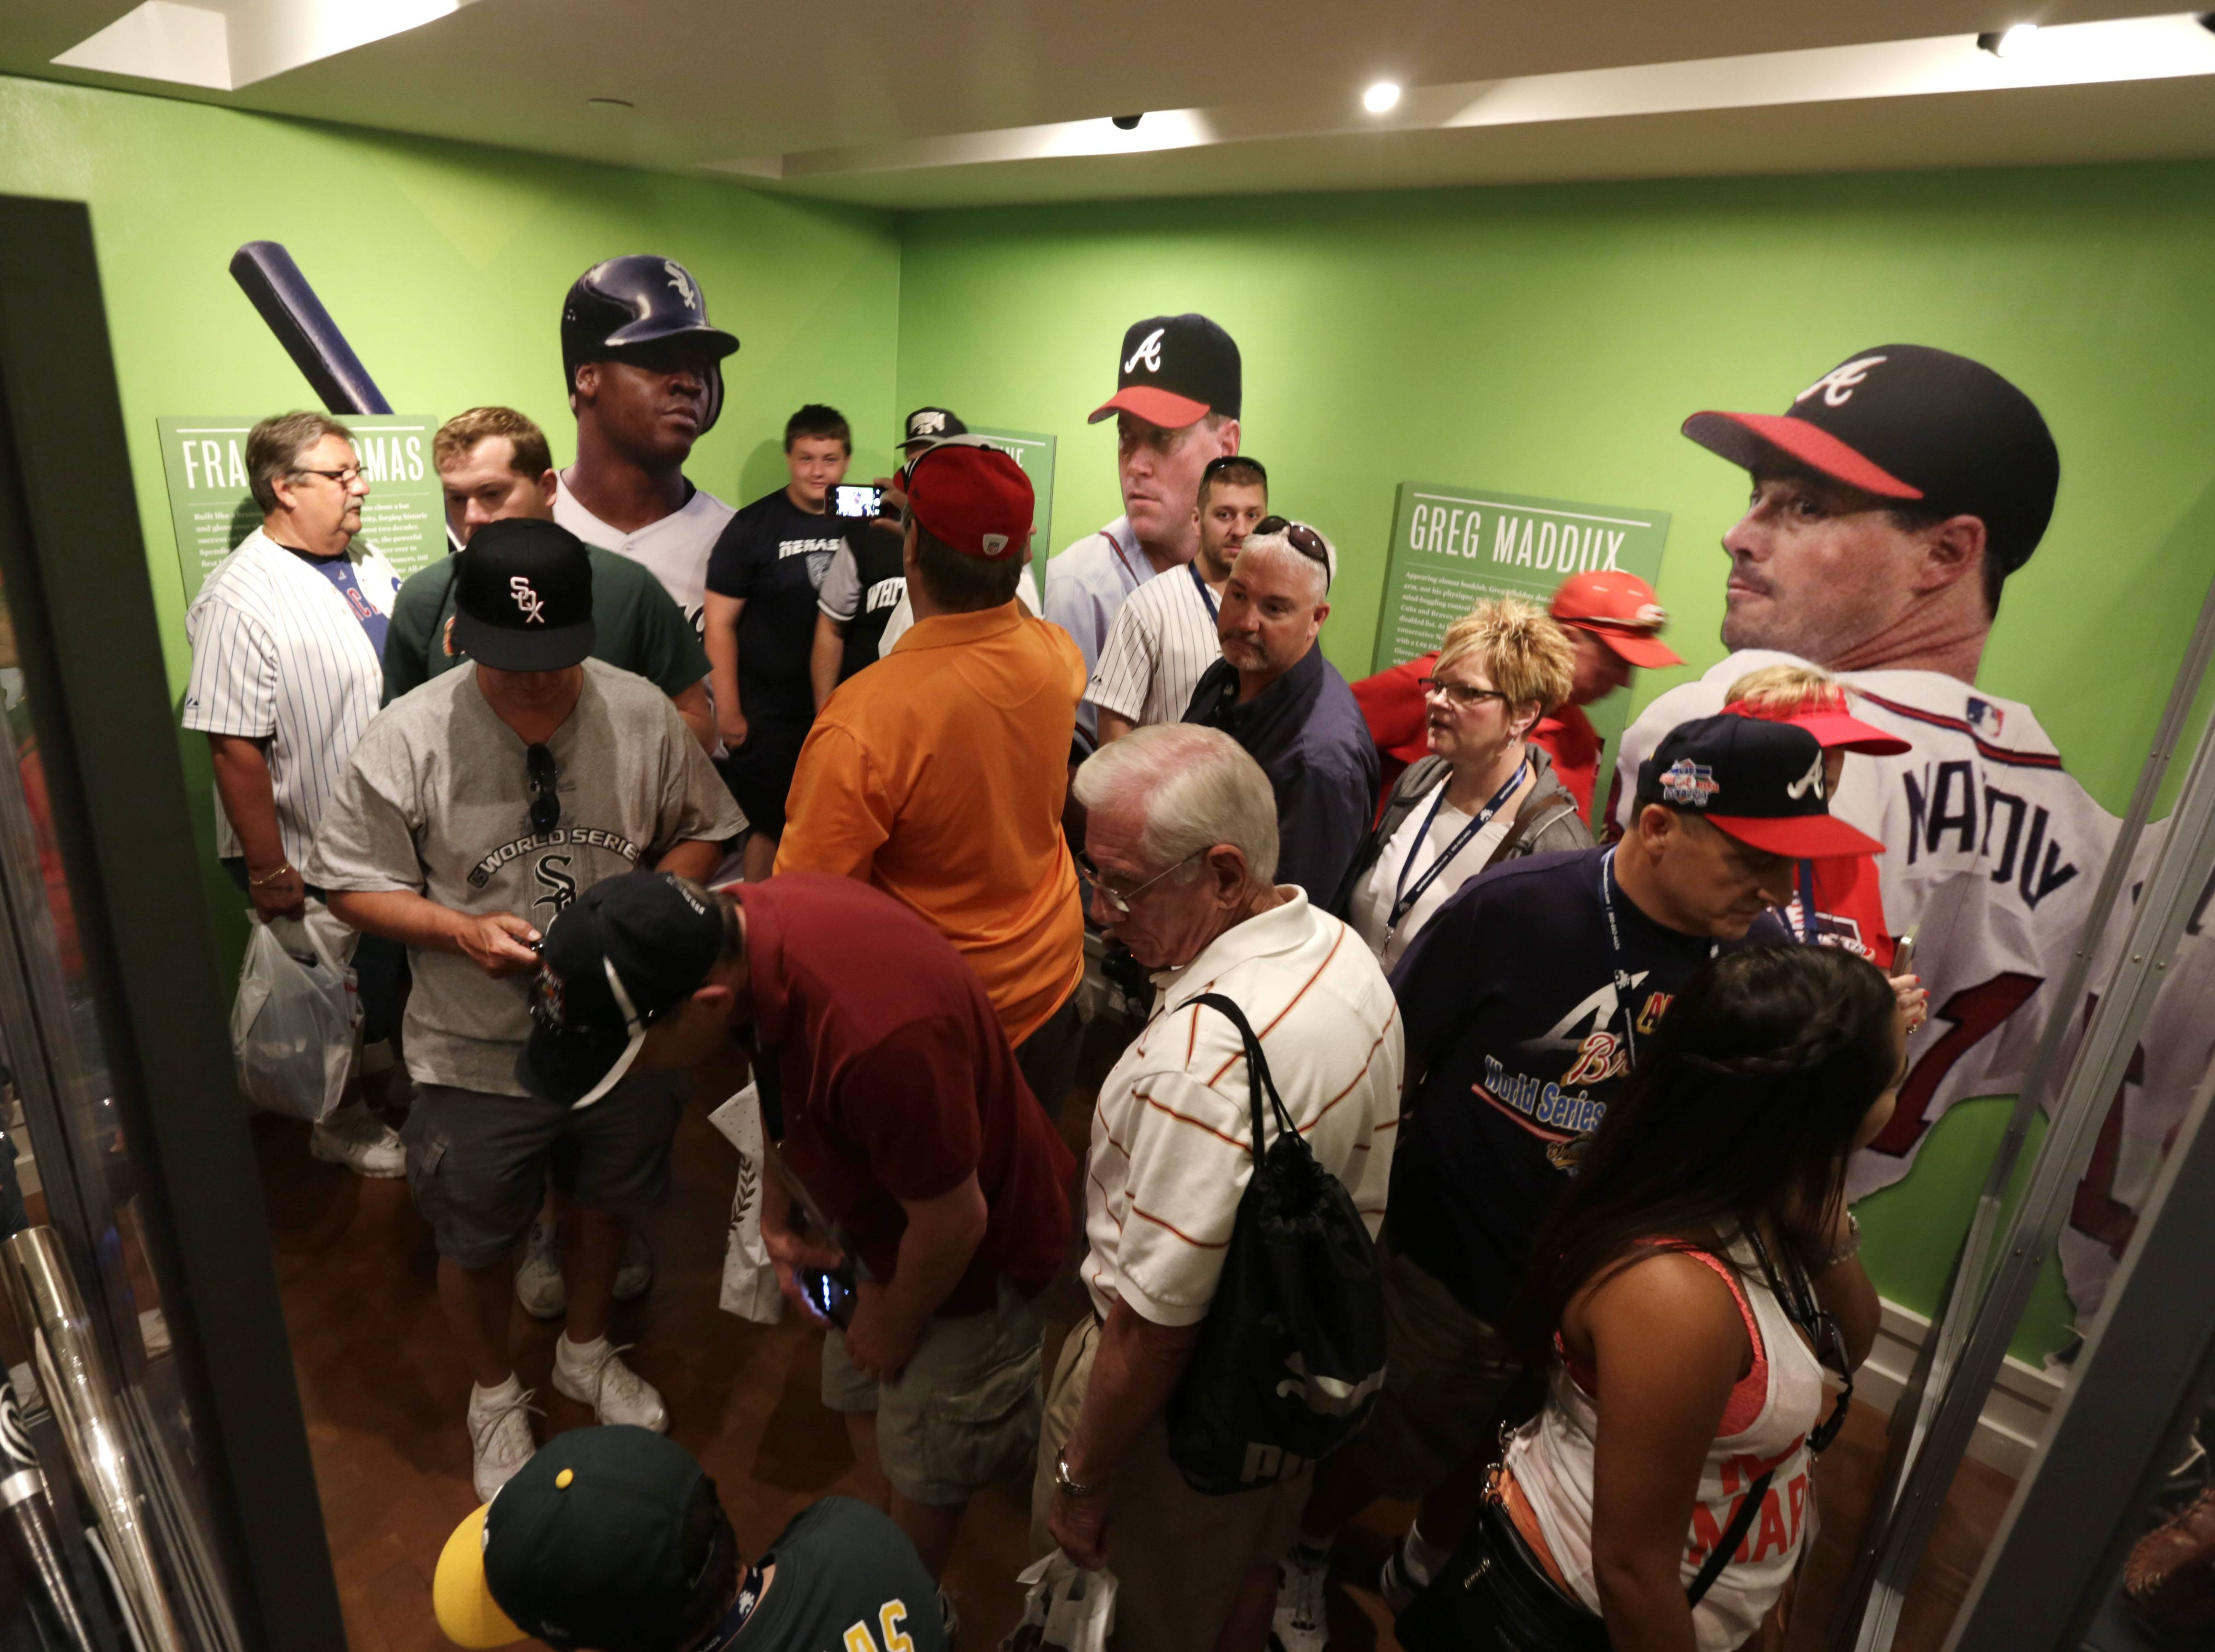 Fans visit displays of Frank Thomas, Tom Glavine and Greg Maddux at the Baseball Hall of Fame on Saturday, July 26, 2014, in Cooperstown, N.Y. The former Major League Baseball players will be inducted to the hall on Sunday.